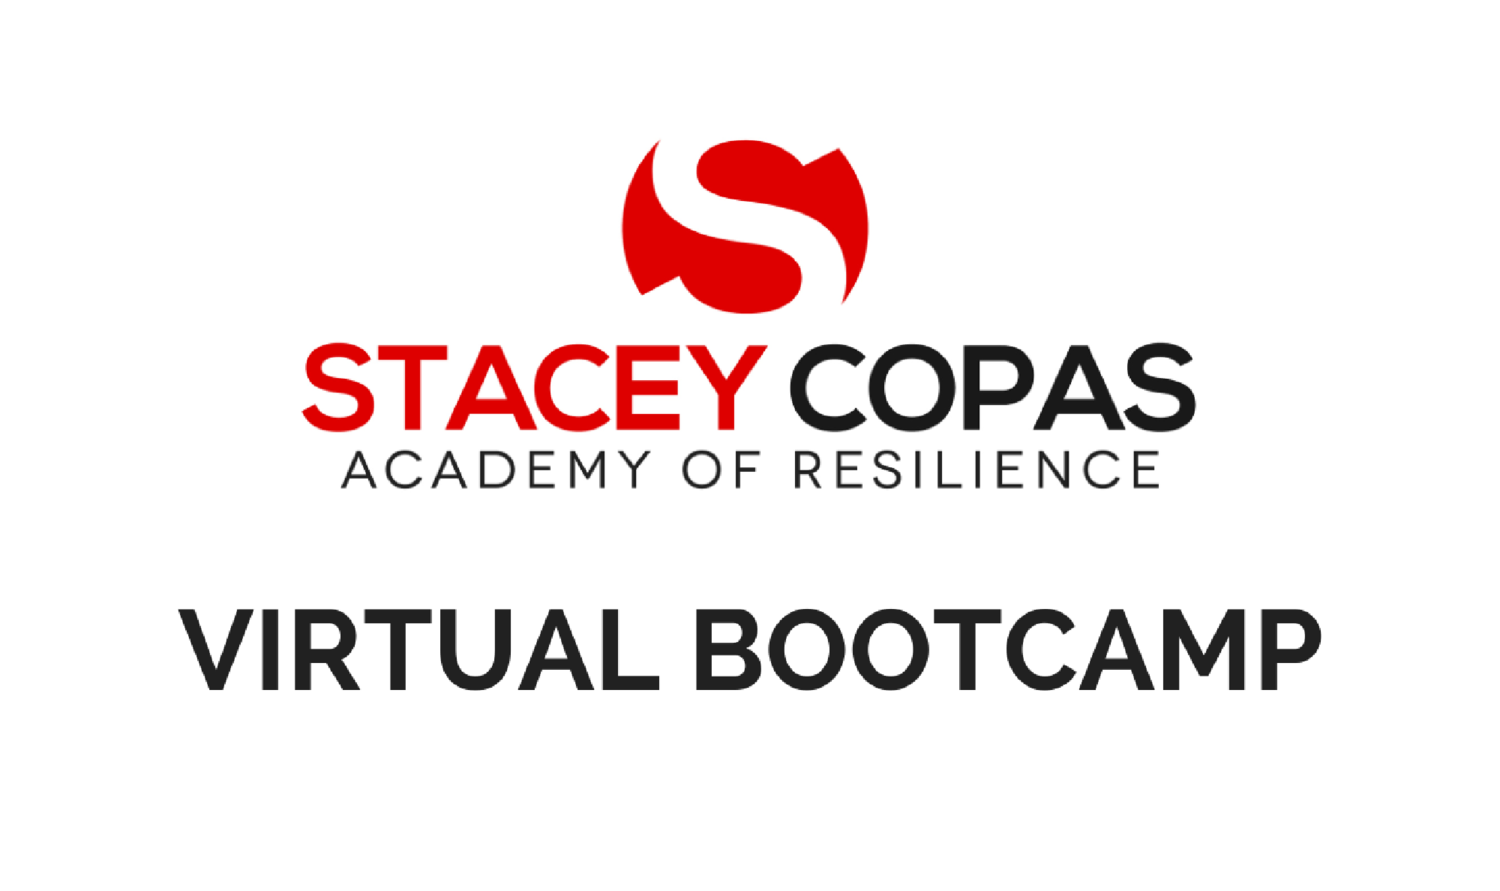 Academy Of Resilience Virtual Bootcamp